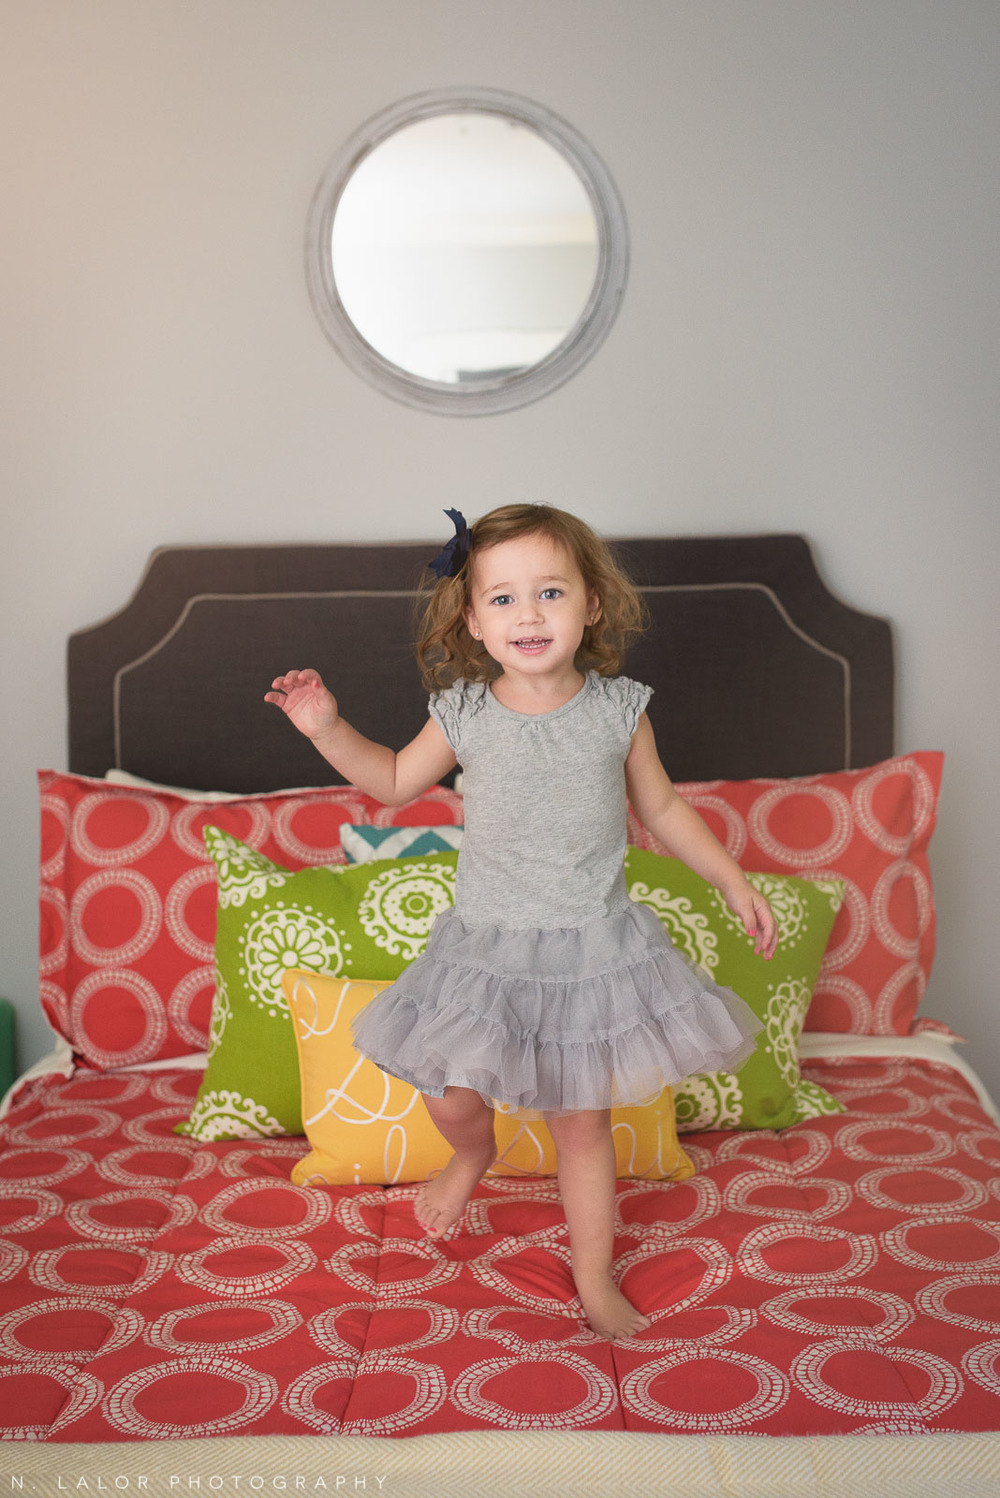 2-year old girl jumping on the bed in her room. Lifestyle portrait by N. Lalor Photography.